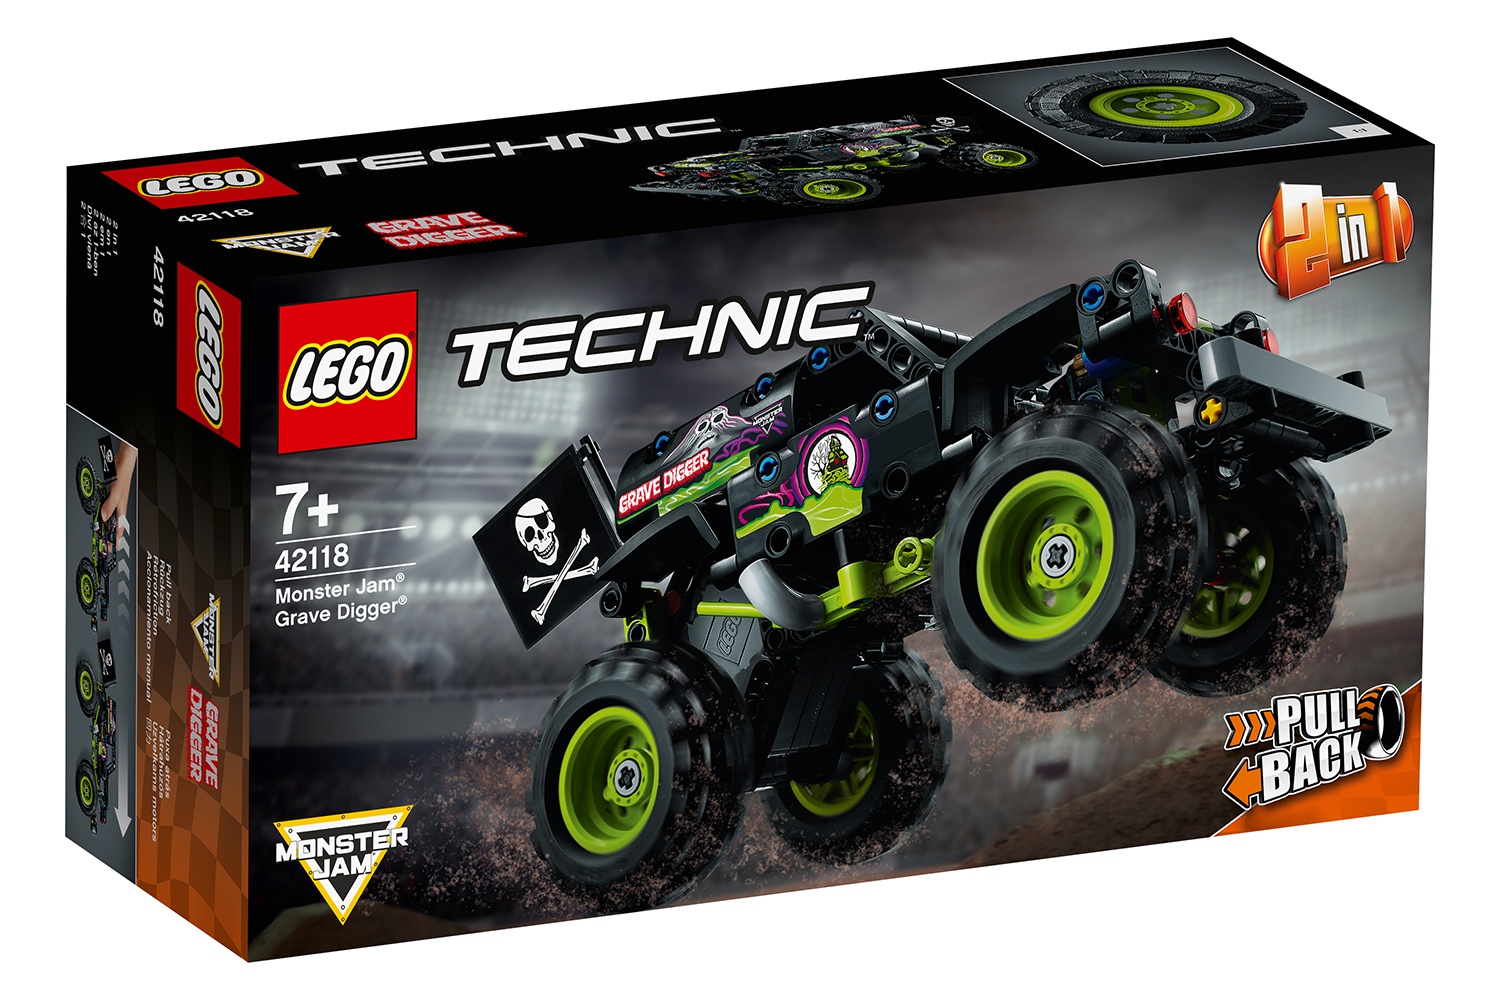 lego-technic-monster-jam-grave-digger-42118/